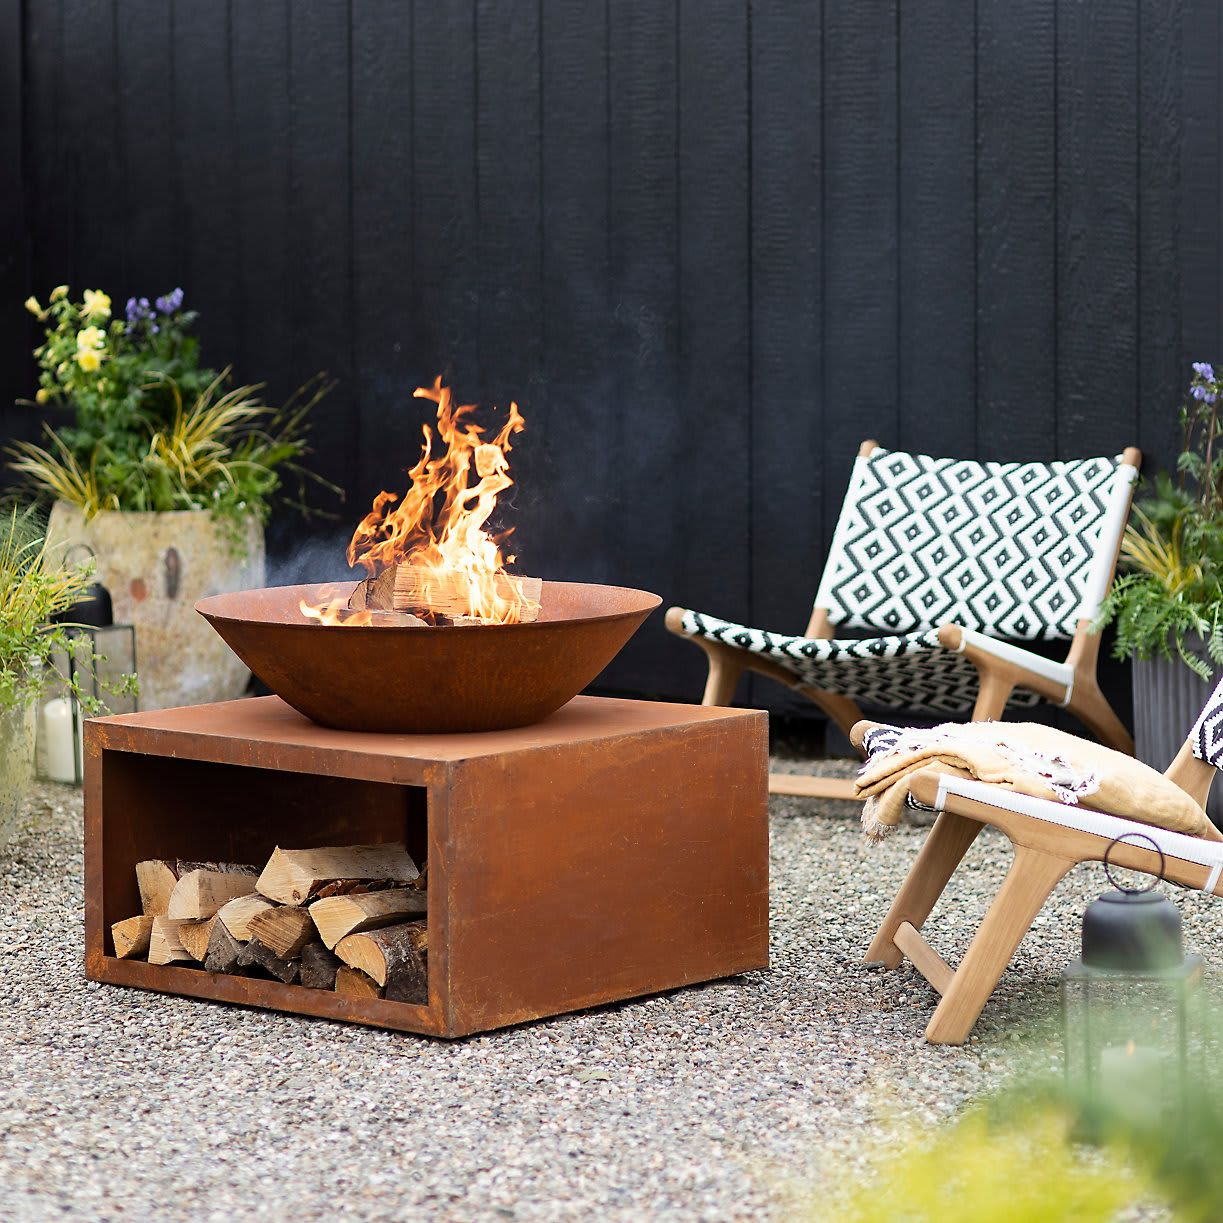 These Are Summer 2019's Biggest Outdoor Decor Trends is part of  - Looking to add to your outdoor decor collection this summer  A new report details 2019's biggest trends, and there's something for everyone